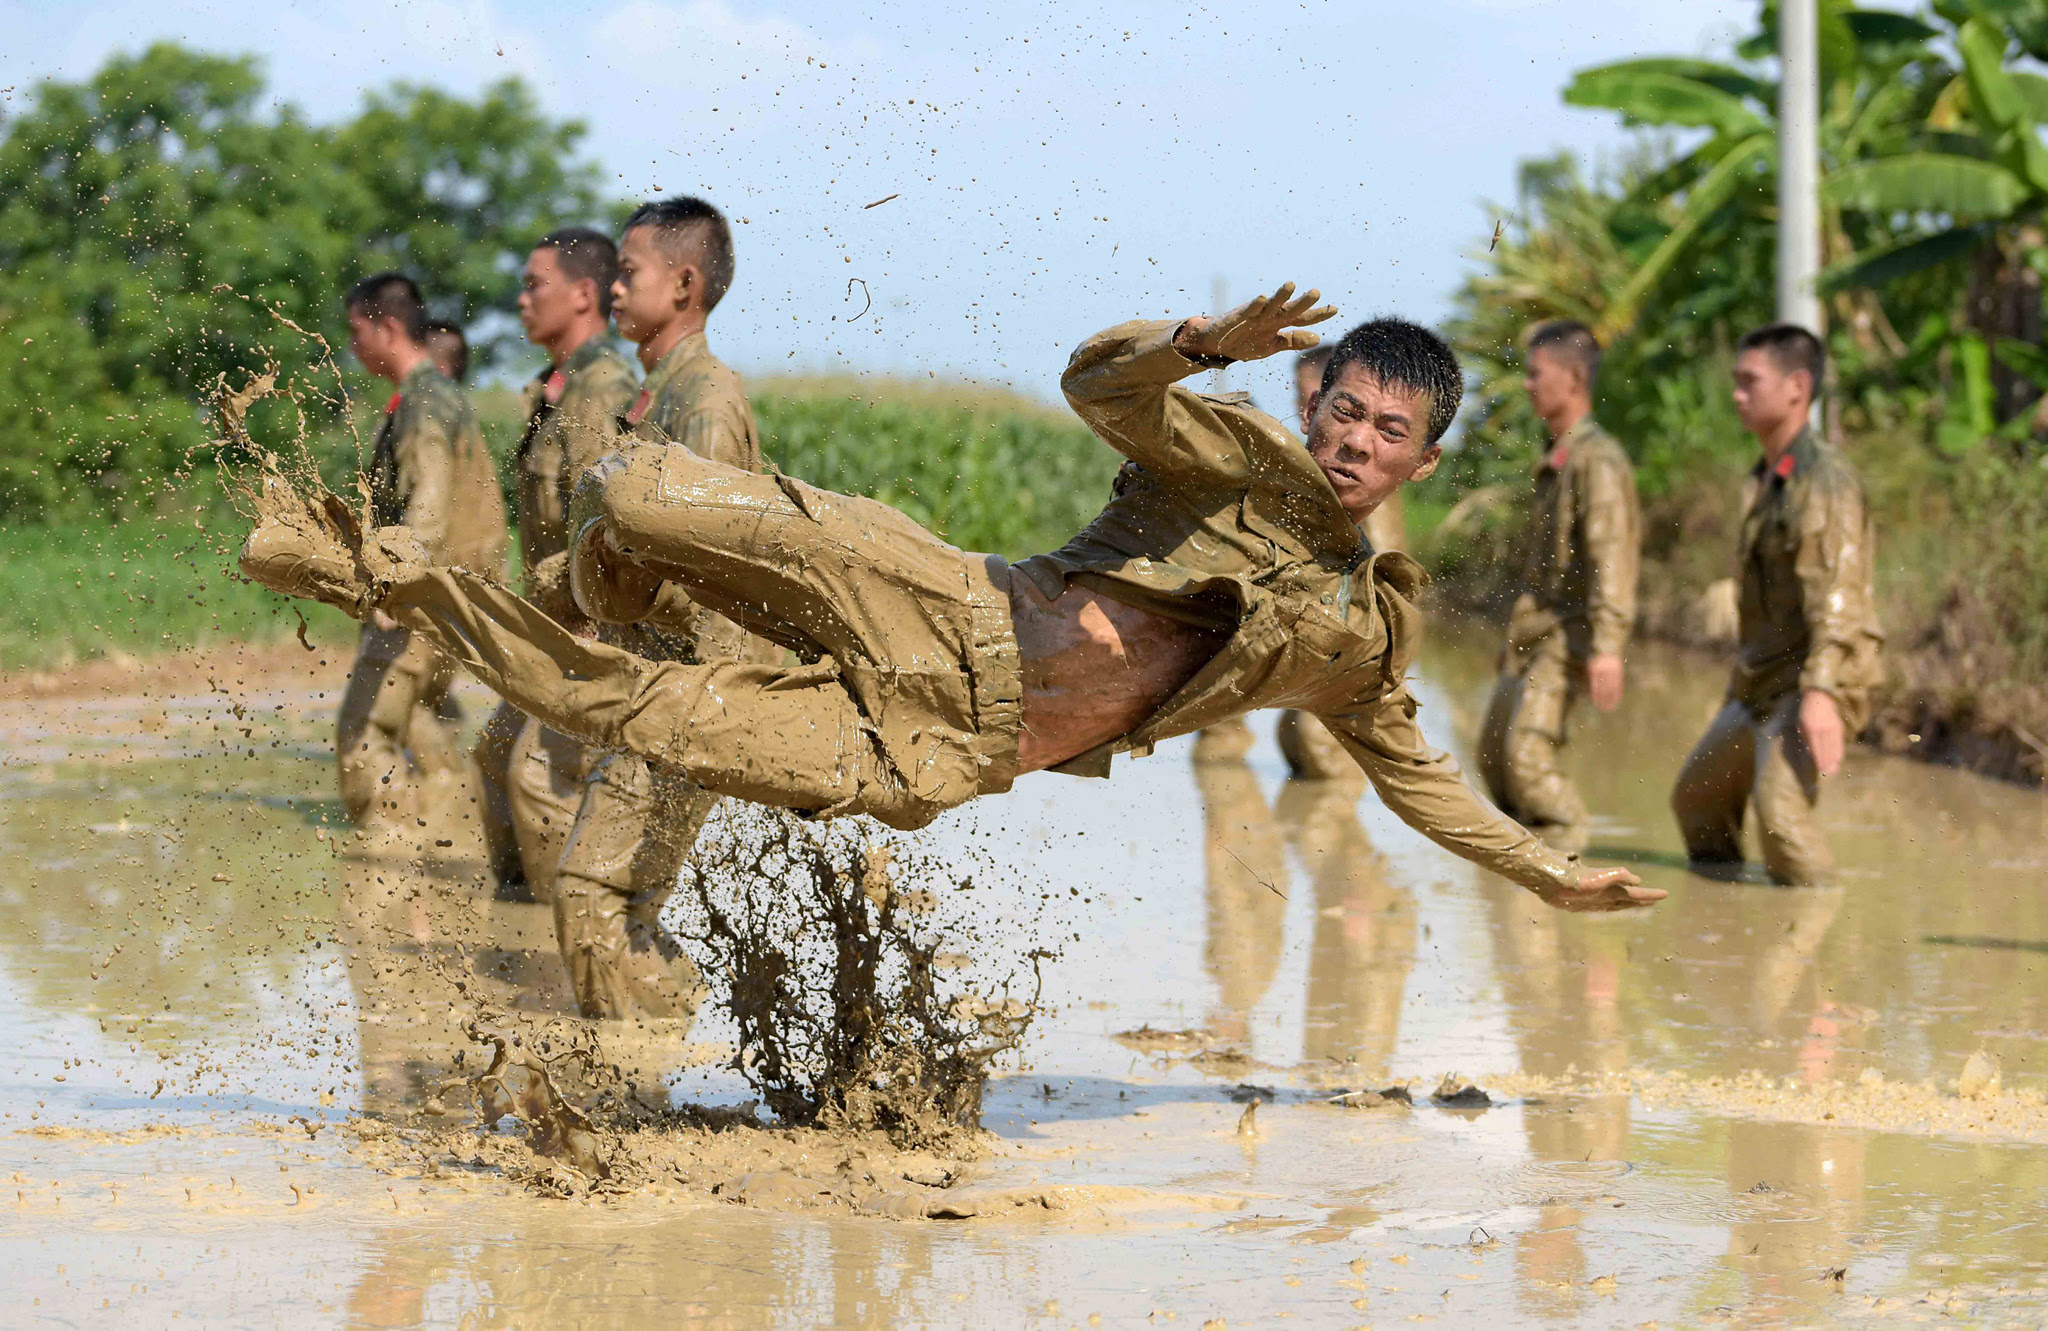 Paramilitary policemen take part in a training session in Nanning, Guangxi Zhuang Autonomous Region, China, June 12, 2016. China Daily/via REUTERS ATTENTION EDITORS - THIS IMAGE WAS PROVIDED BY A THIRD PARTY. EDITORIAL USE ONLY. CHINA OUT.